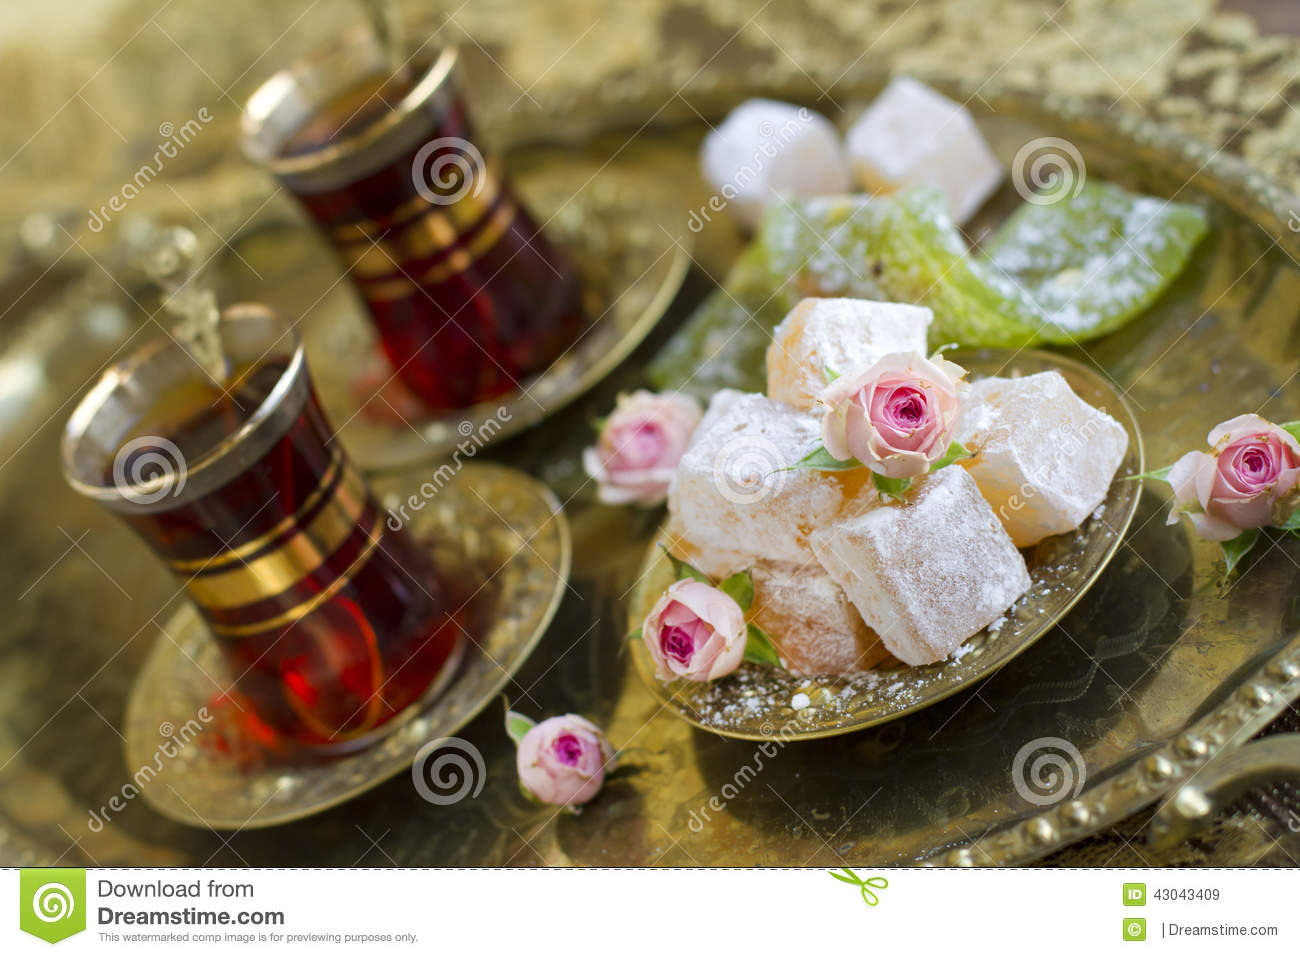 Rahat-lokum With Tea And Roses Stock Photo - Image: 43043409